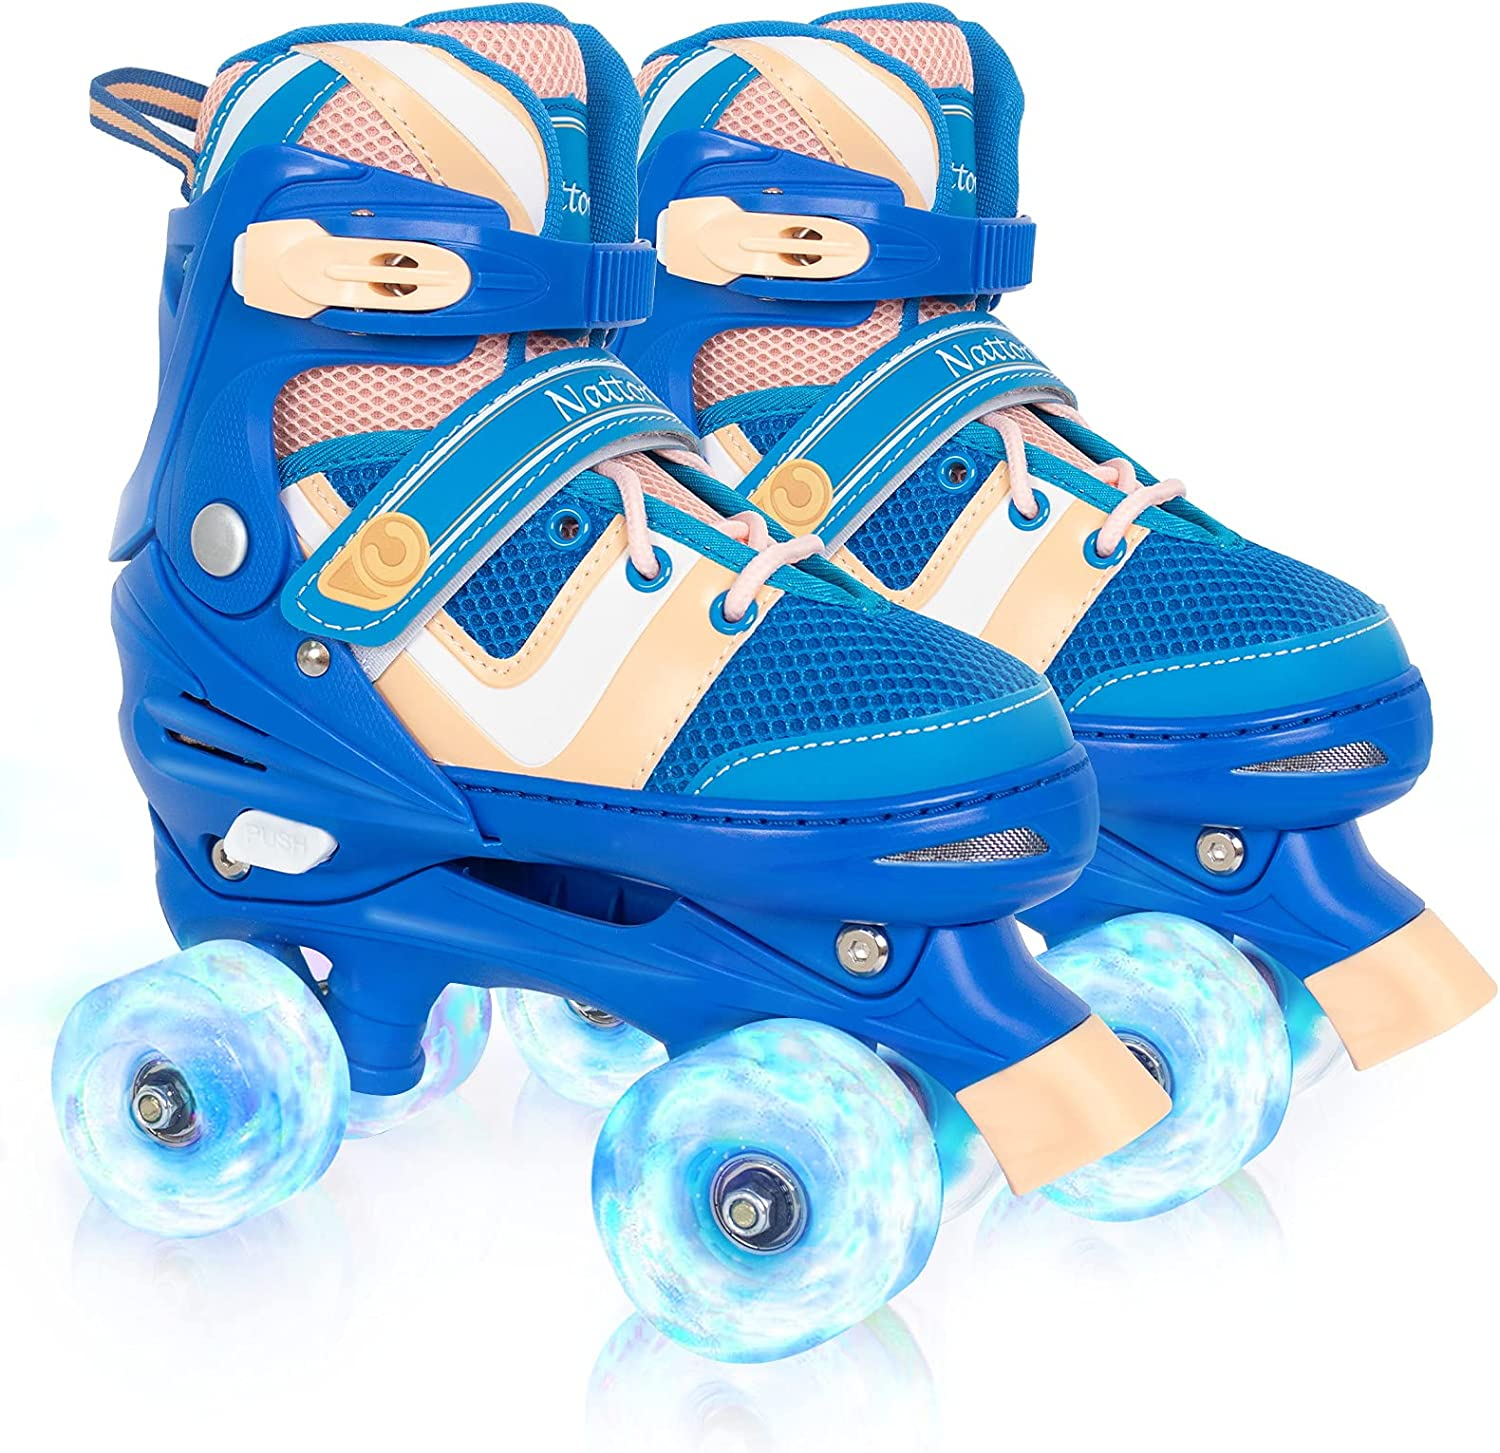 Nattork Adjustable Gifts Roller Skates Ranking TOP19 for Kids O with Up Light Wheel